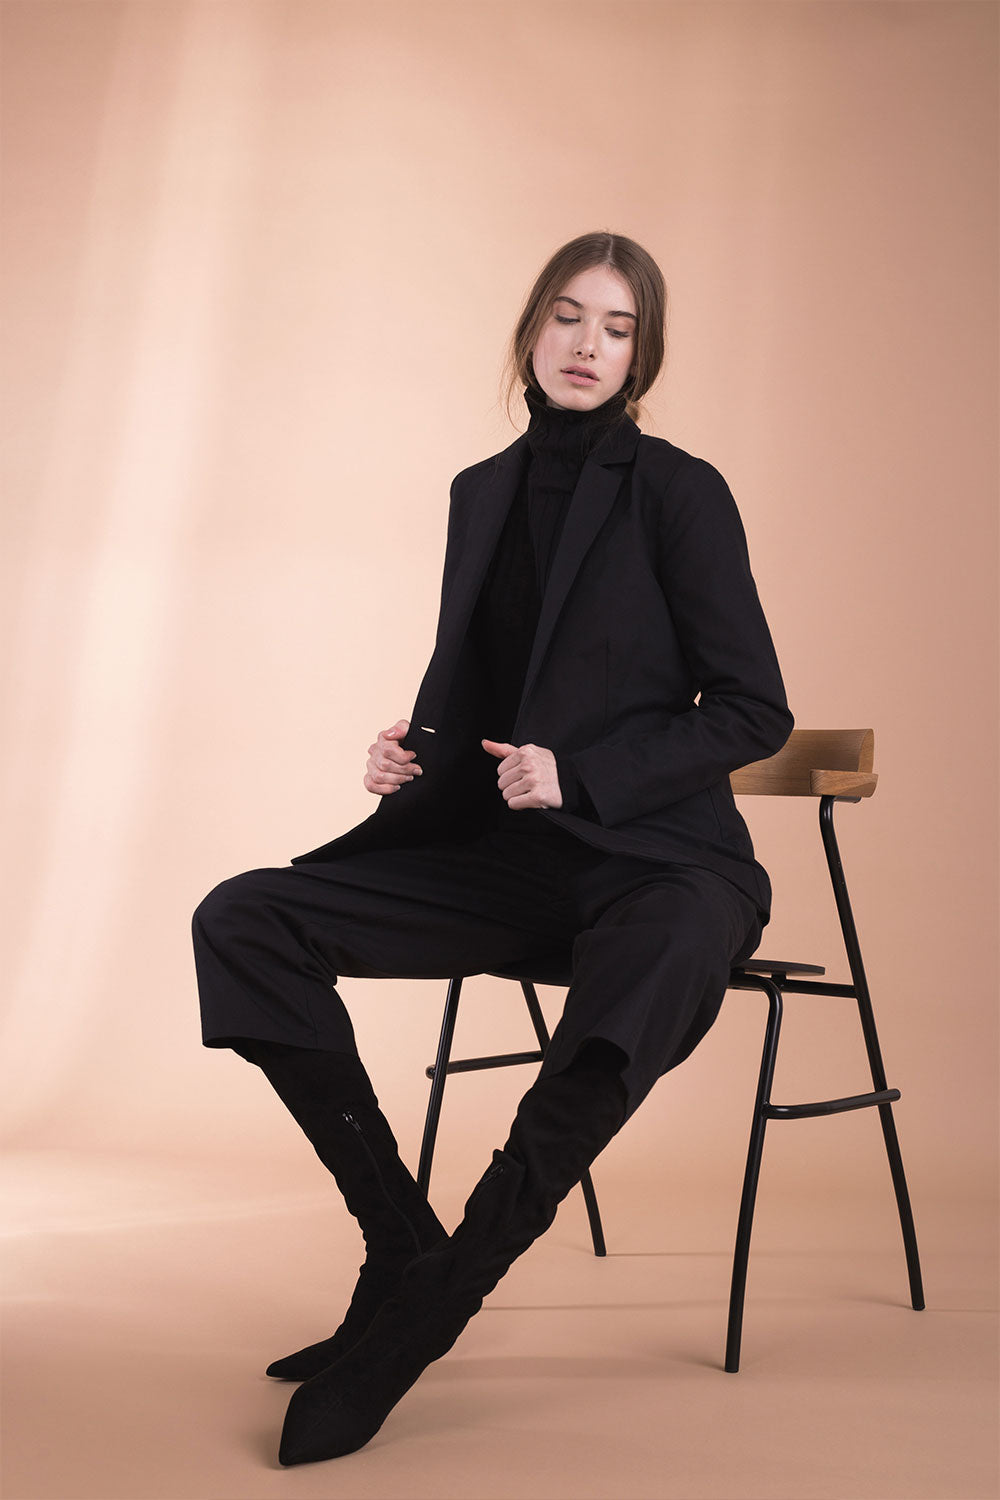 The model wears a black, sustainable, organic cotton, tailored jacket and sits on a chair.